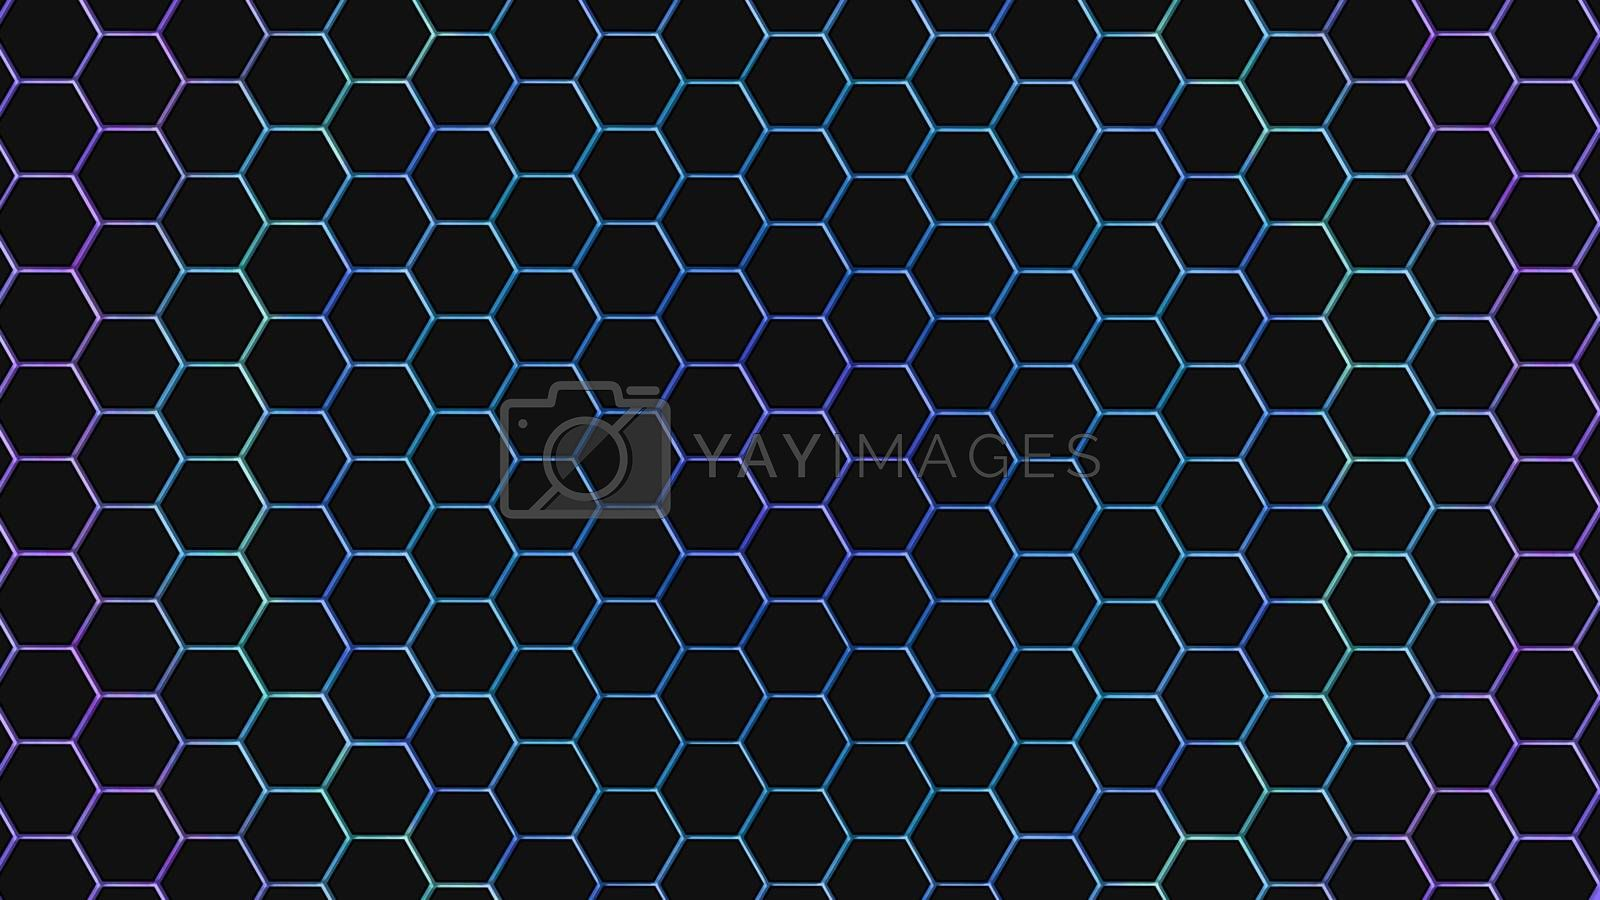 Blue and purple hexagonal texture. Abstract background for design.